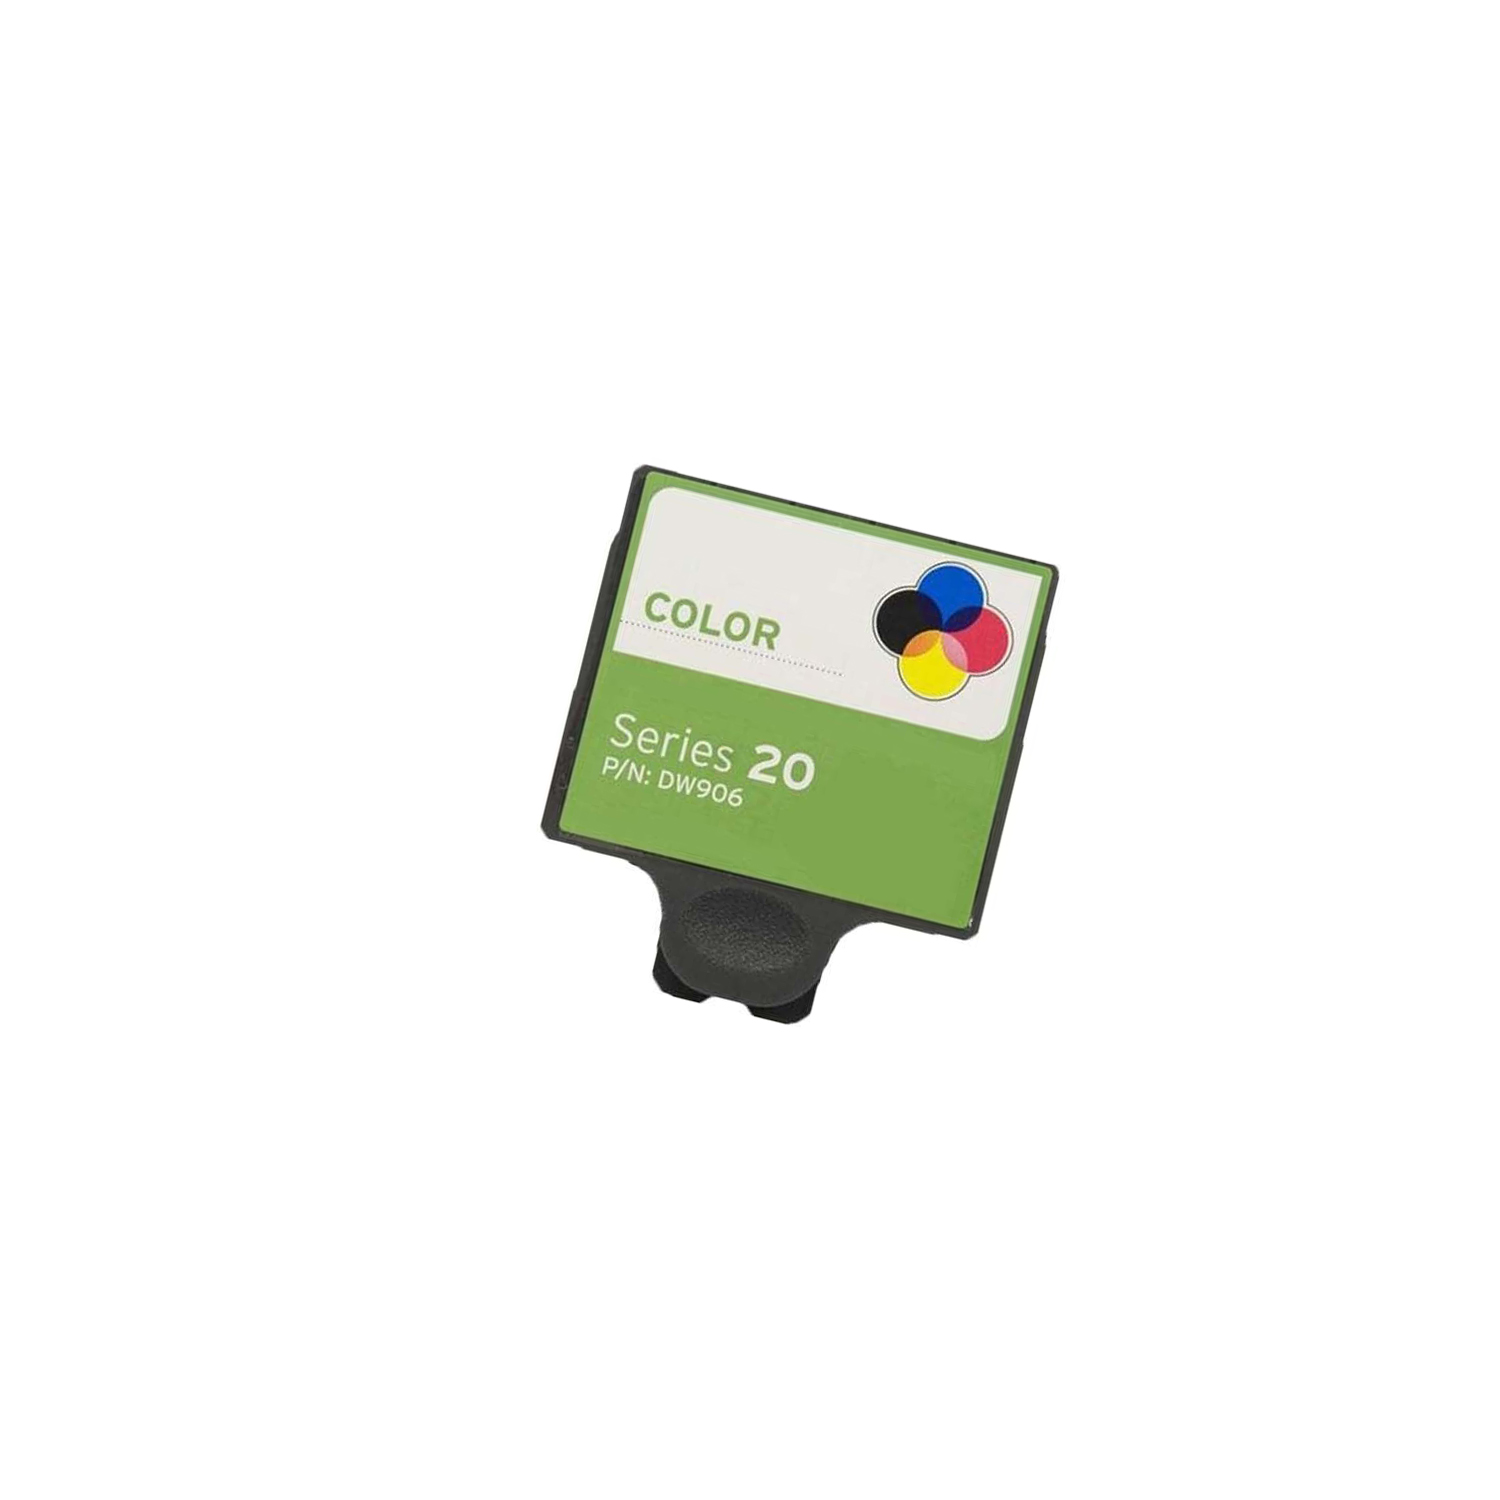 AB Volts Remanufactured Ink Cartridge Replacement for Dell DW905 for P703w Black,2-Pack